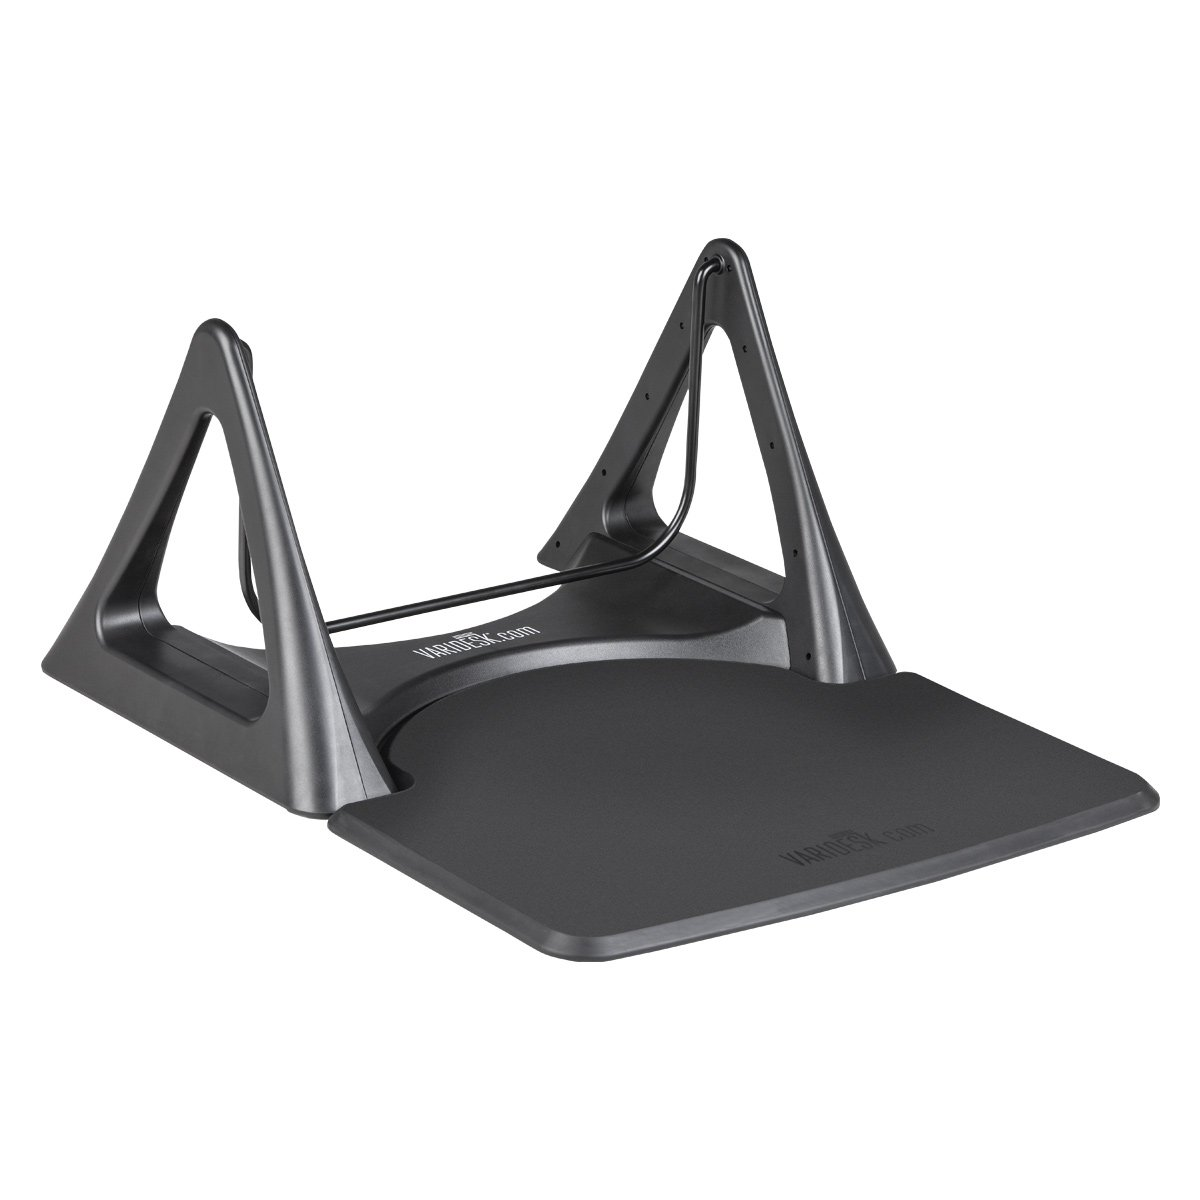 VARIDESK - Standing Desk Anti-Fatigue Comfort Floor Mat – ActiveMat Rocker